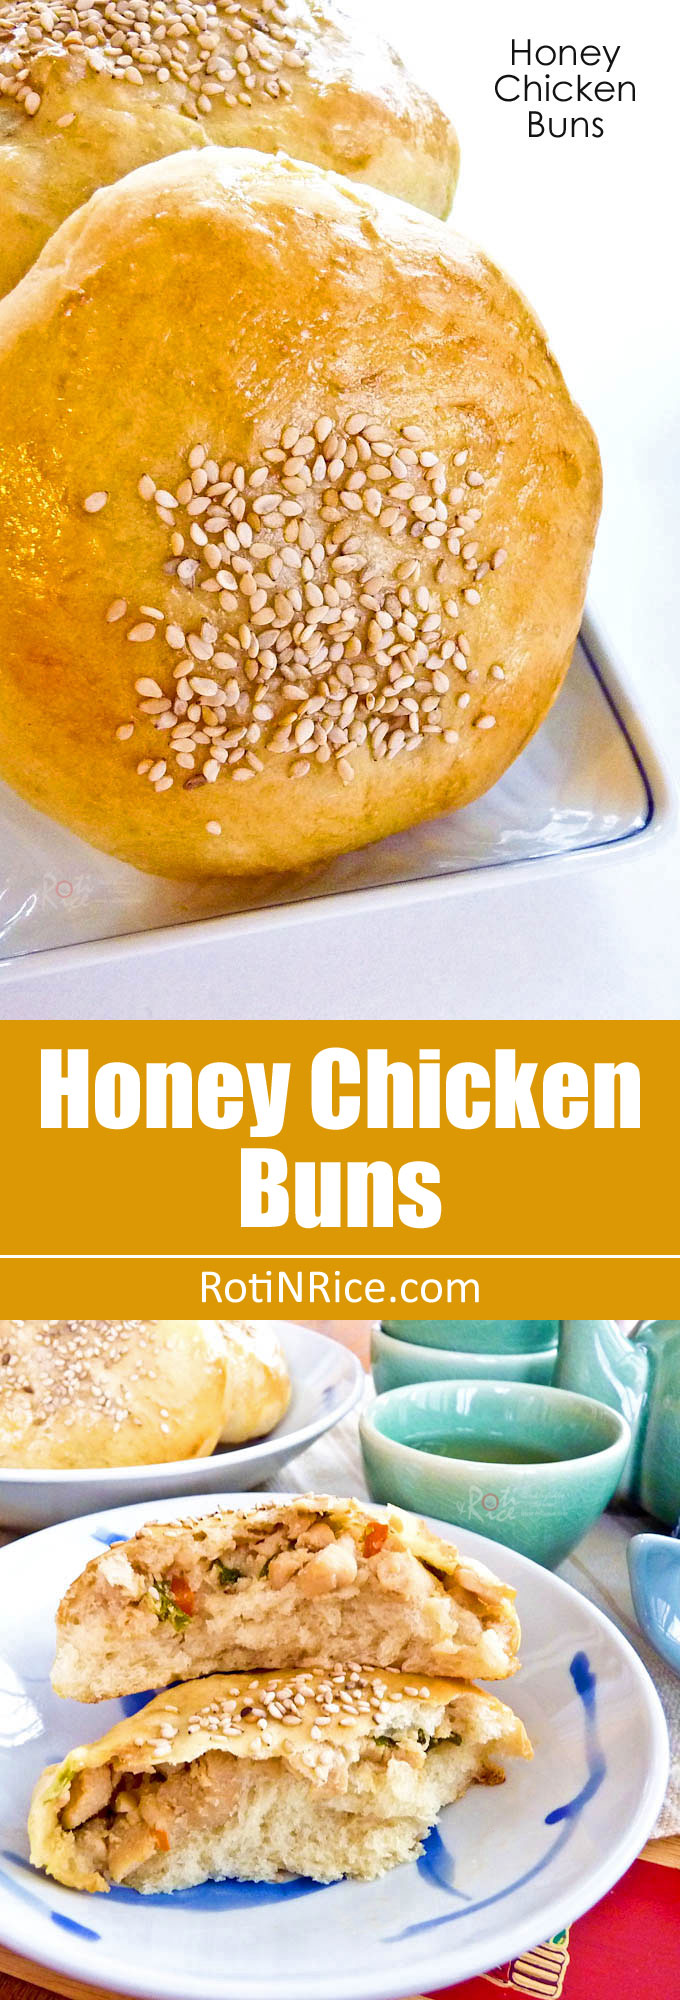 Delectable sesame seeded Honey Chicken Buns filled with honey and ginger flavored chicken. They are perfect for a snack or light lunch. | RotiNRice.com